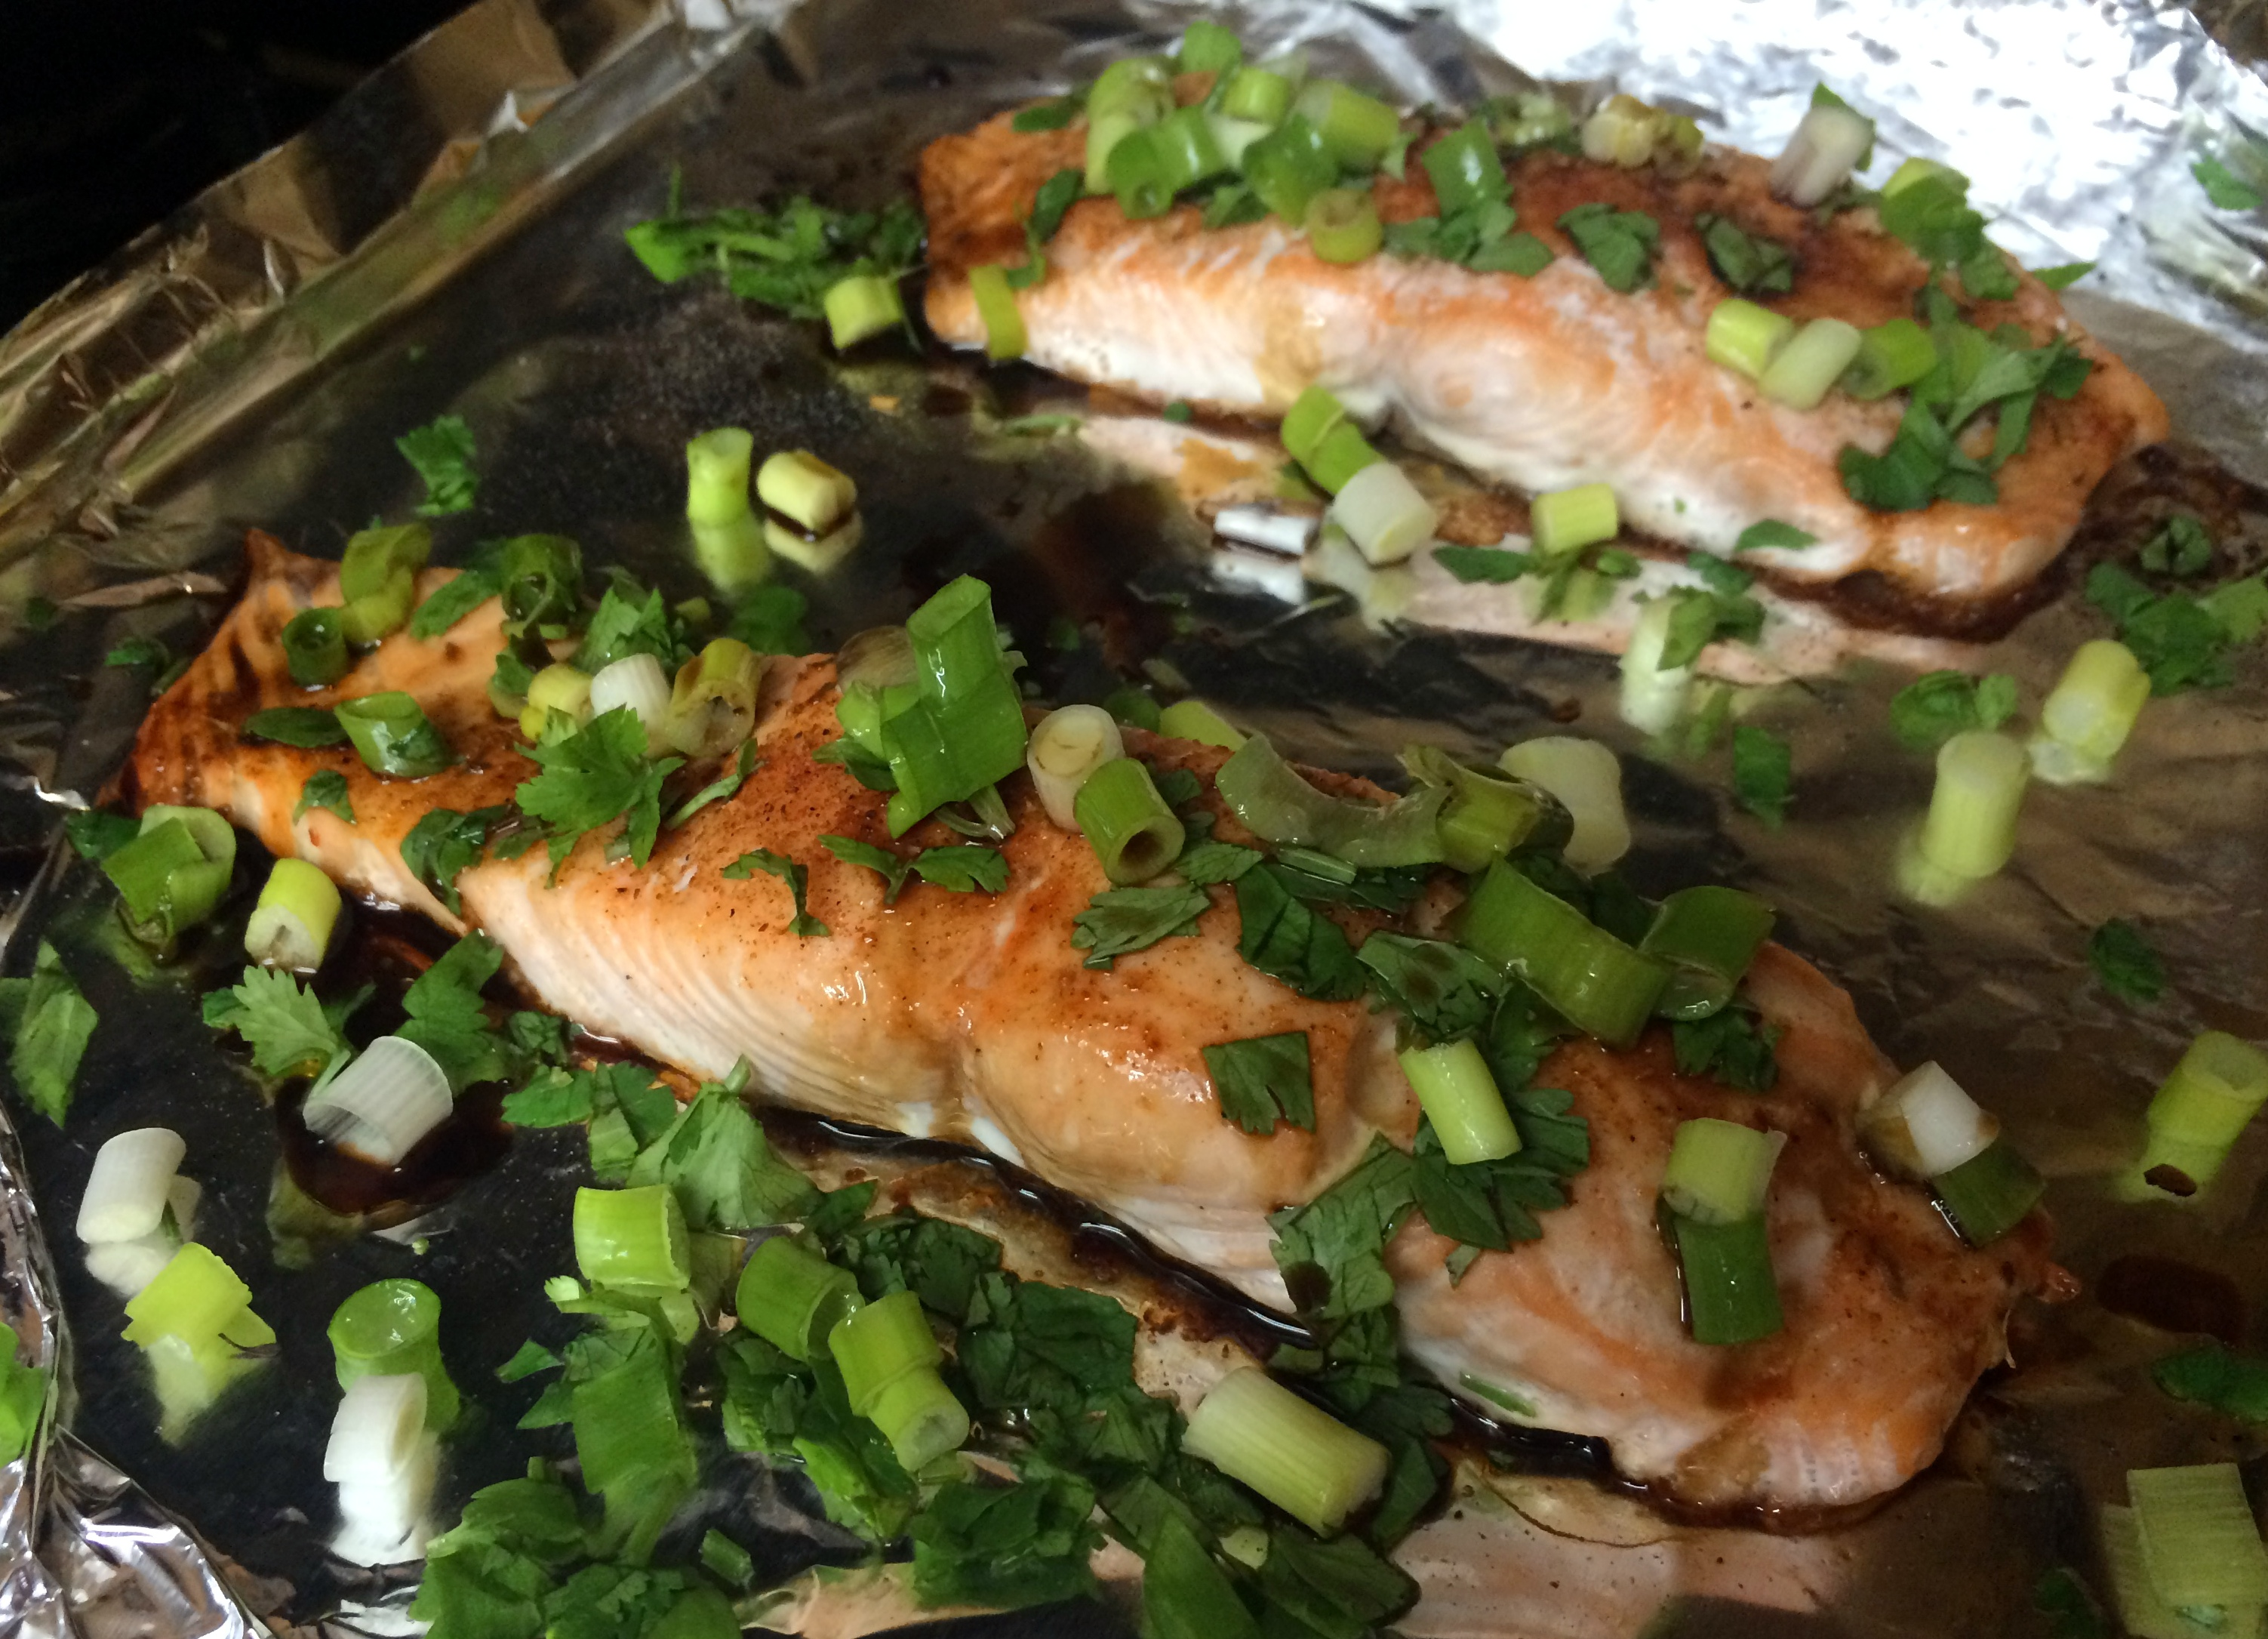 Tent with a piece of foil for approximately 10 minutes. Tented salmon & Oven-roasted Salmon with Cilantro and Green Onions Recipe - Jeans ...